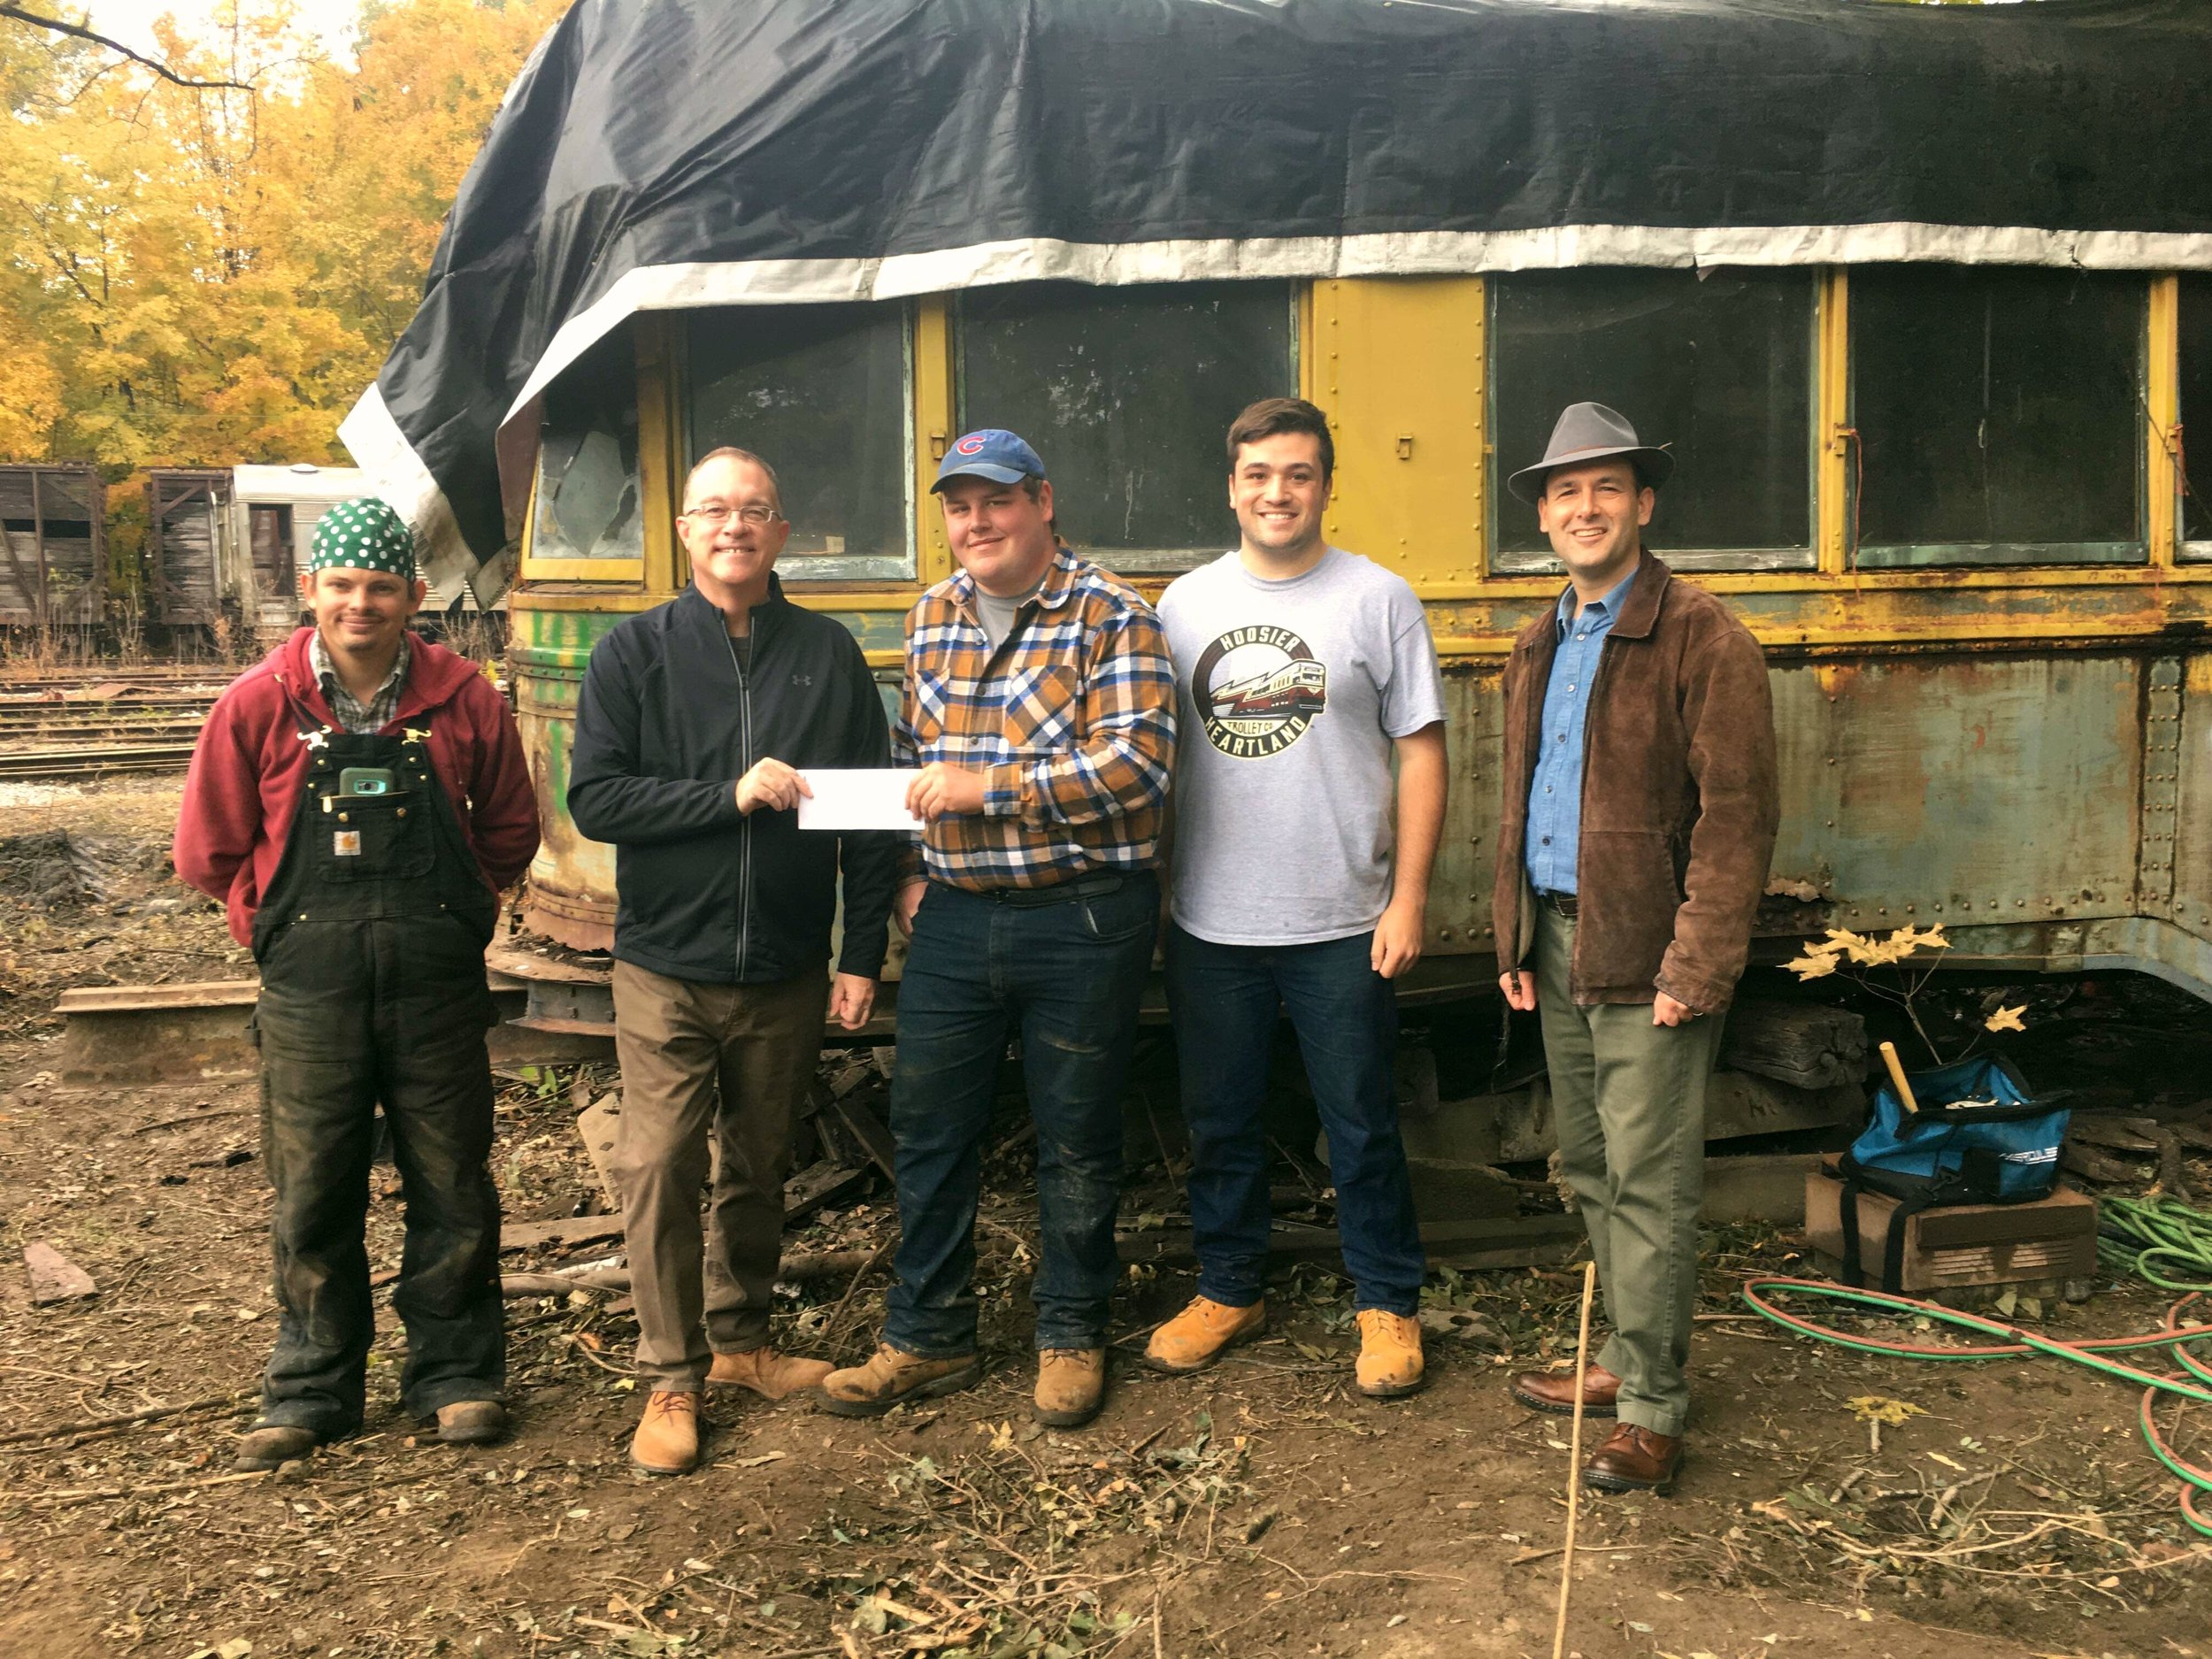 Indiana Landmarks Vice President of Preservation Services Mark Dollase presents the grant letter and check to Hoosier Heartland Trolley Company Secretary William Whitmer at Forest Park in front of the last Indianapolis streetcar on Saturday, October 27, 2018.     Left to Right:    HHTC Treasurer Jakob Stage, Indiana Landmarks Vice President of Preservation Services Mark Dollase, HHTC Secretary William Whitmer and Vice President Cameron Nichols, and City of Noblesville Deputy Mayor Steve Cooke.